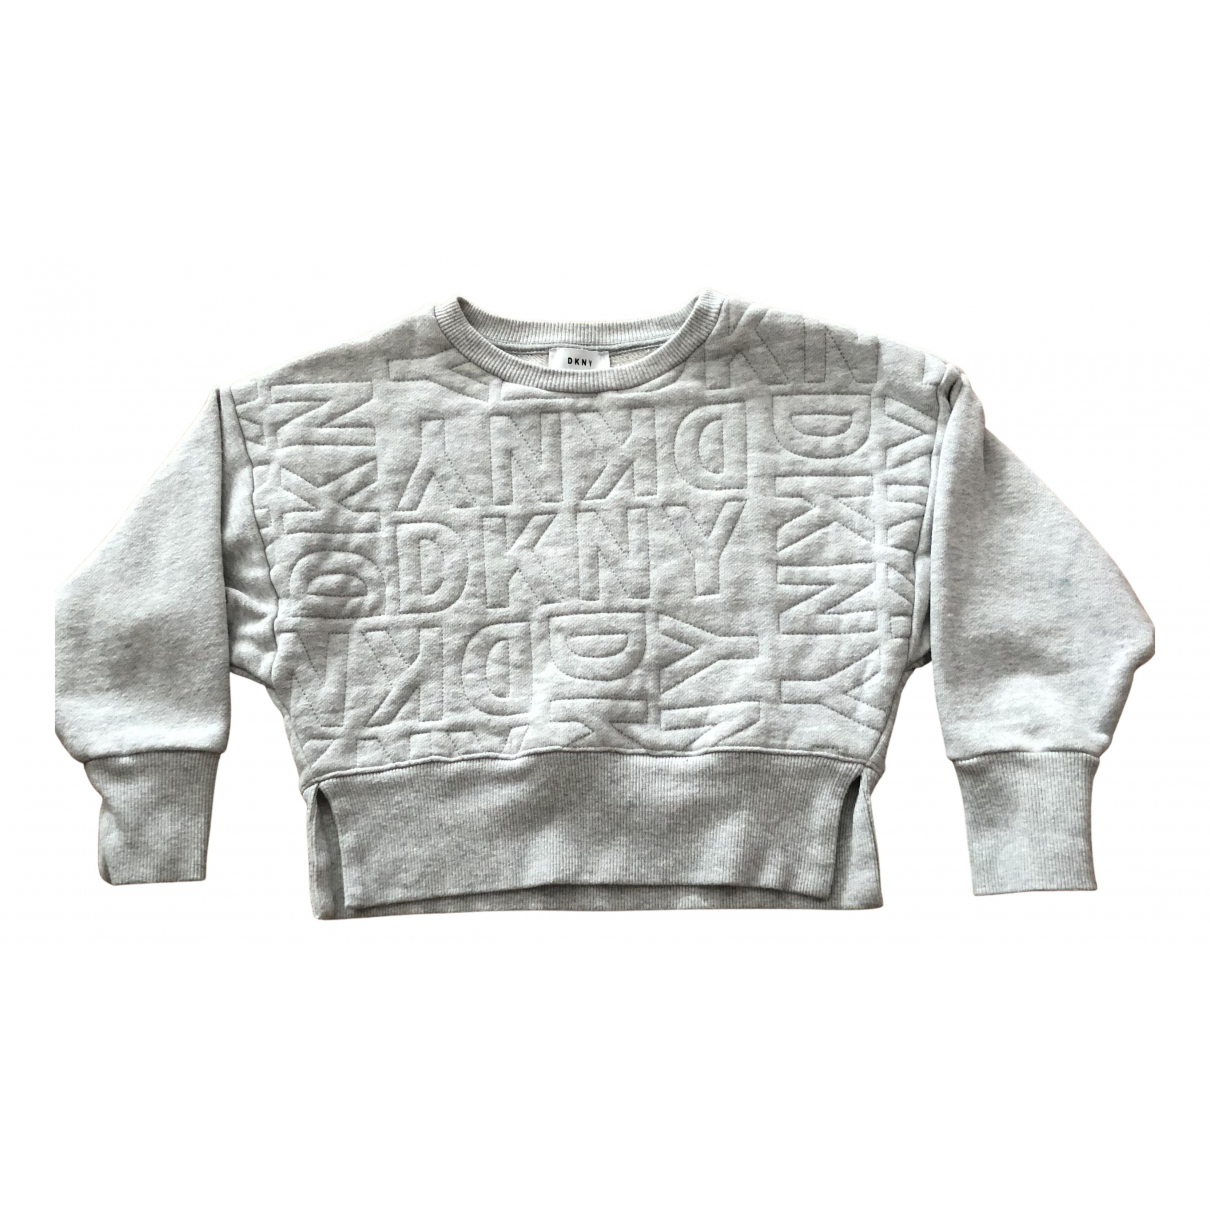 Dkny N Grey Cotton Knitwear for Kids 6 years - up to 114cm FR